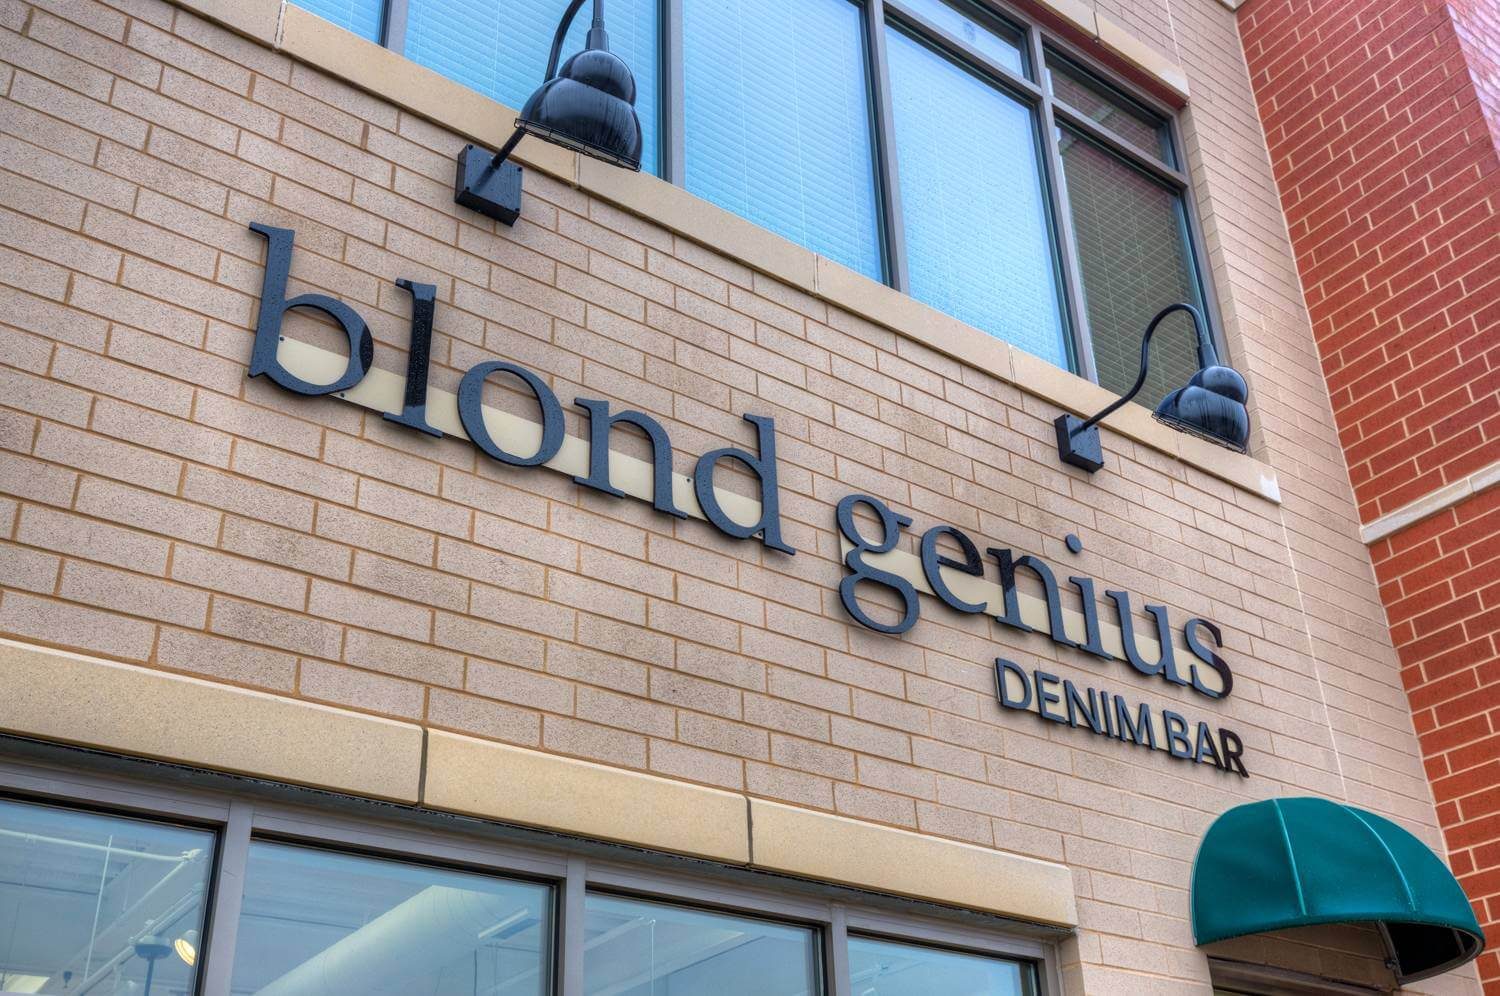 Blond genius sign